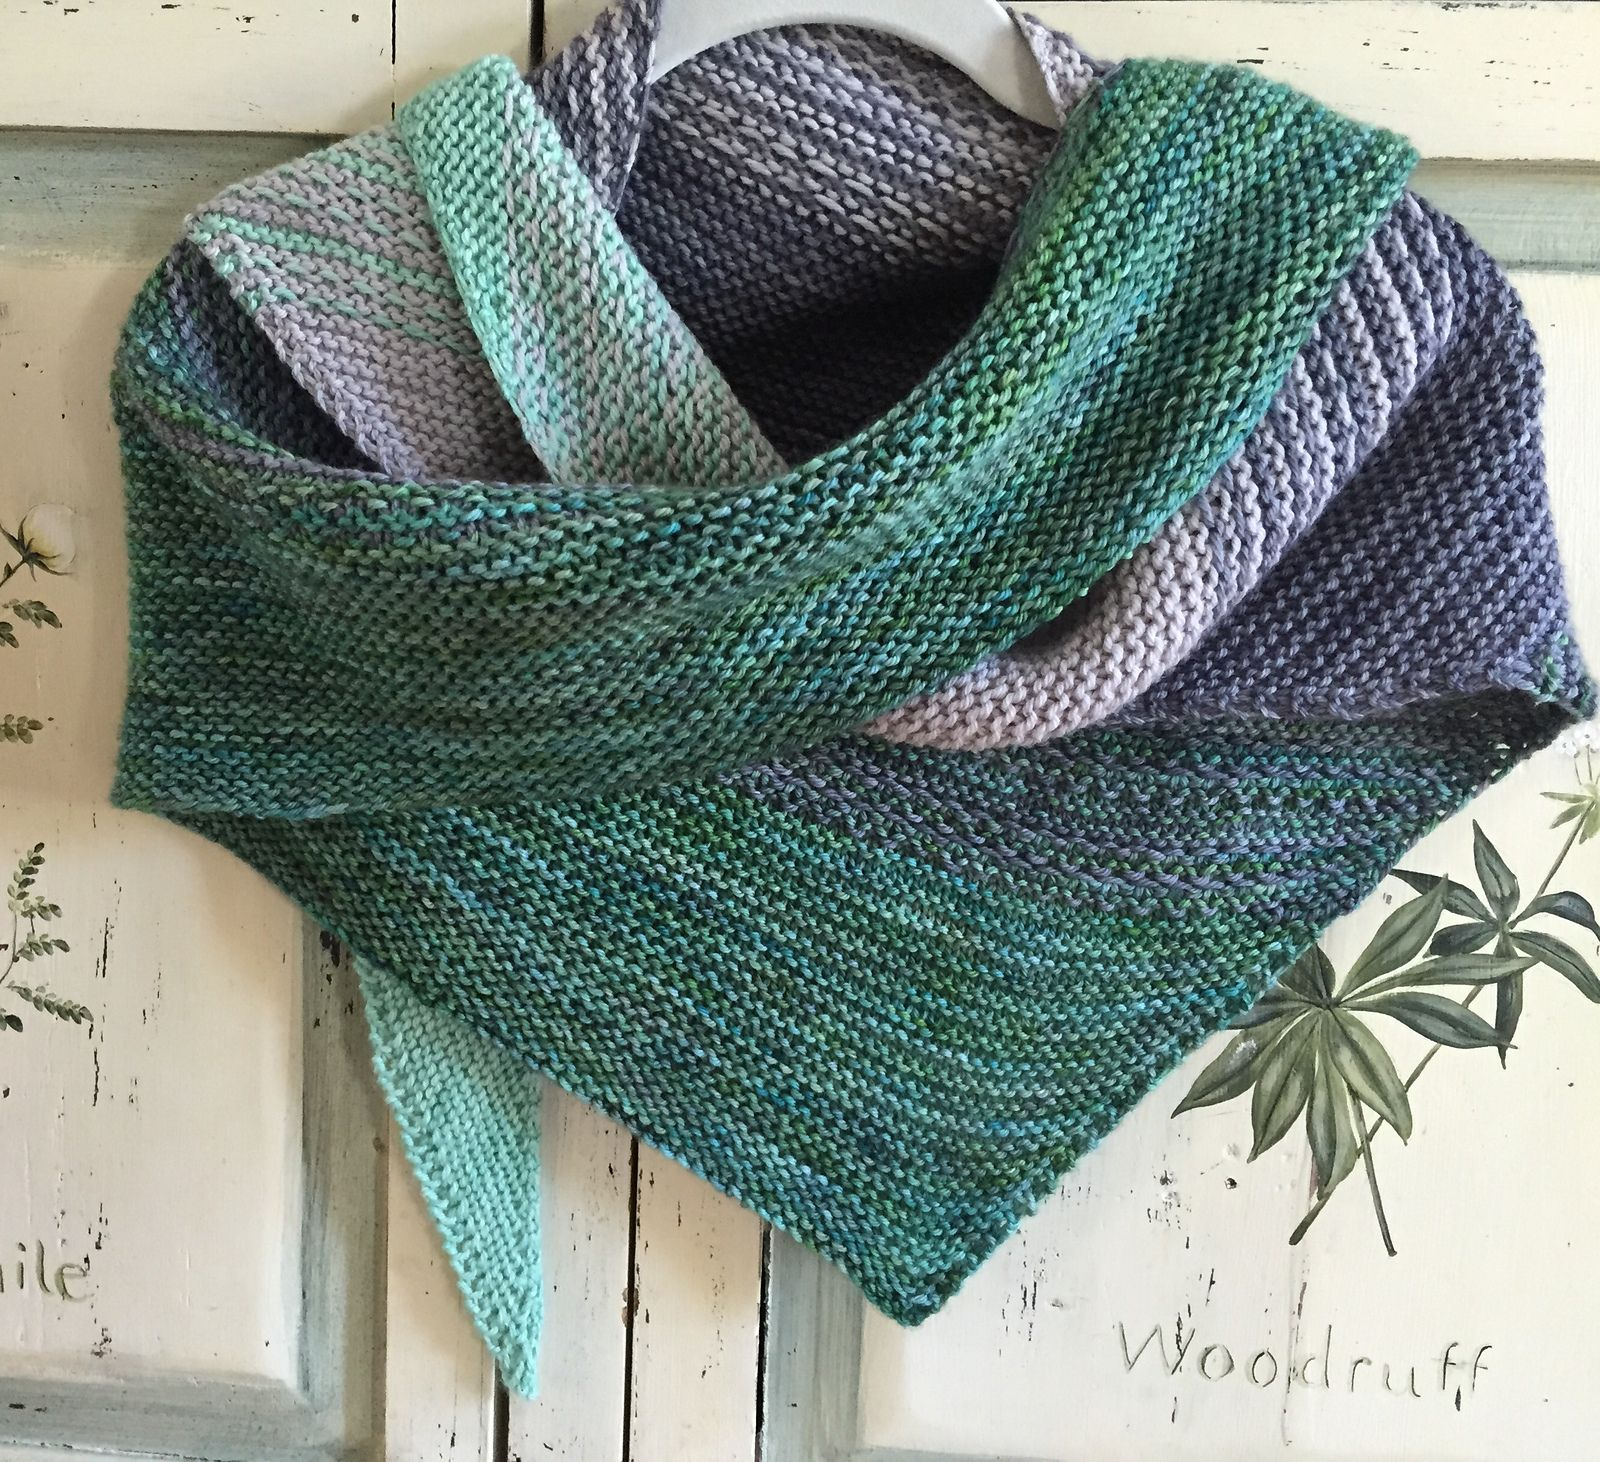 beginning knitting projects 30 super easy knitting and crochet patterns for beginners  knitting and crocheting are both  we have collected some great beginning patterns and projects for.